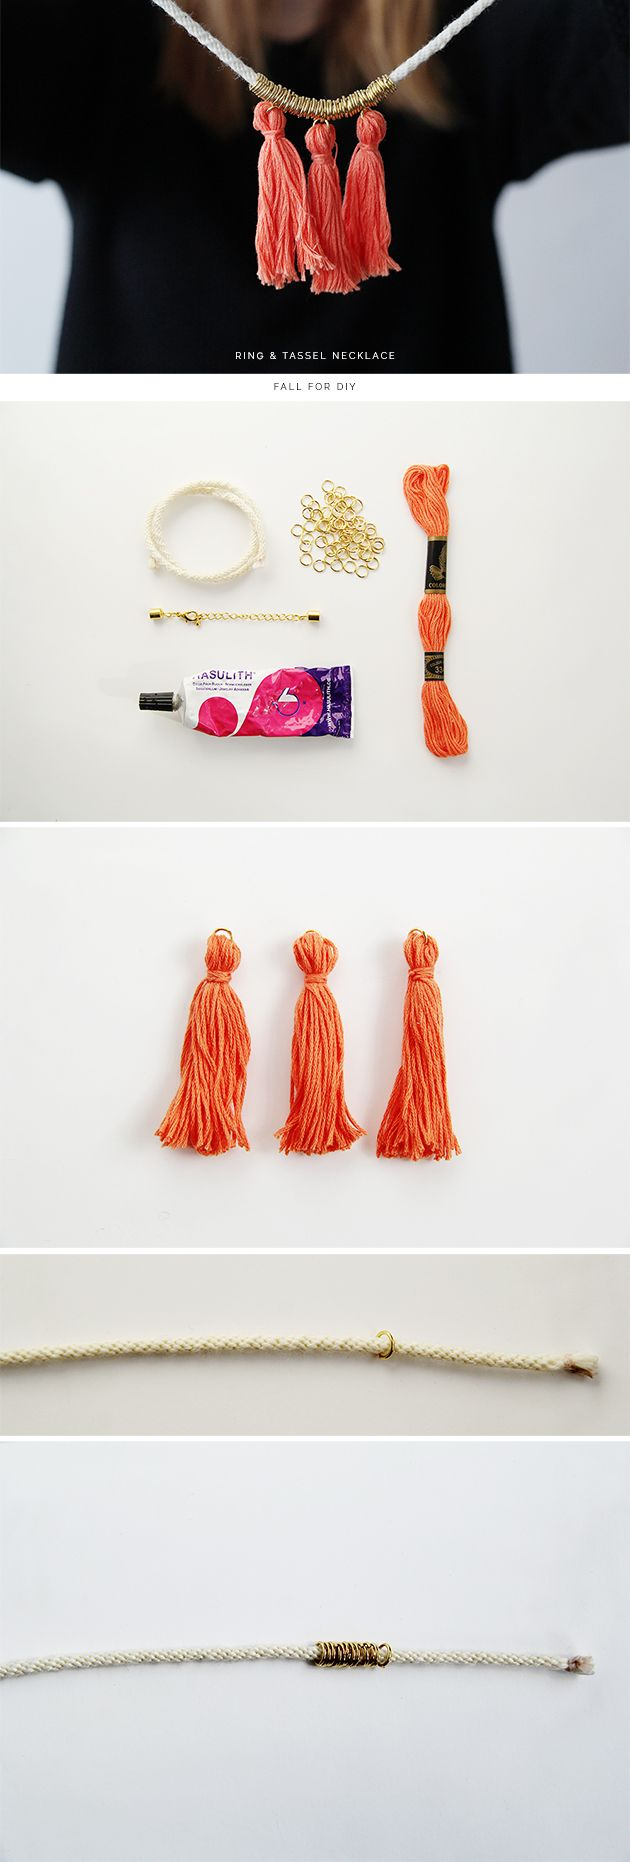 Fall For DIY Cord and Tassel Necklace tutorial via @Francesca Galafti Galafti Galafti Galafti Stone